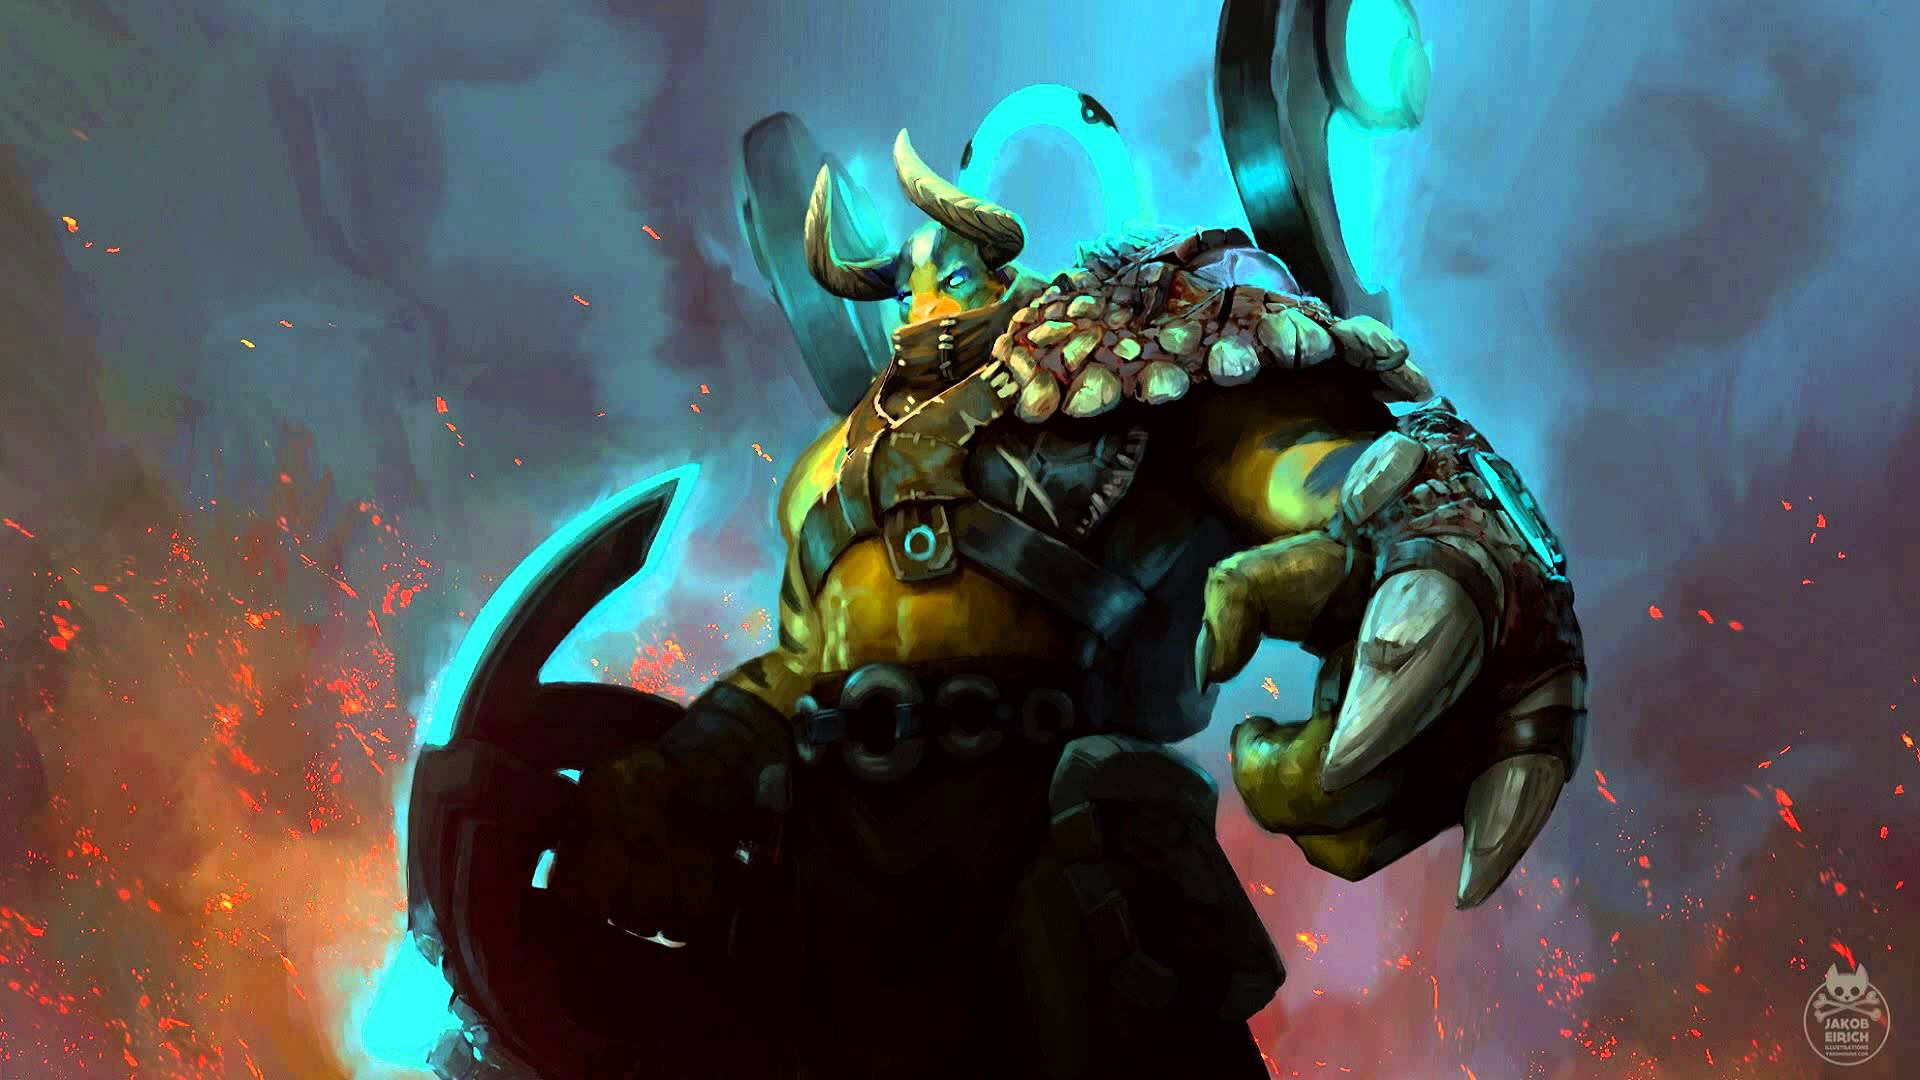 Dota 2 Elder Titan Wallpapers For Android Is Cool Wallpapers